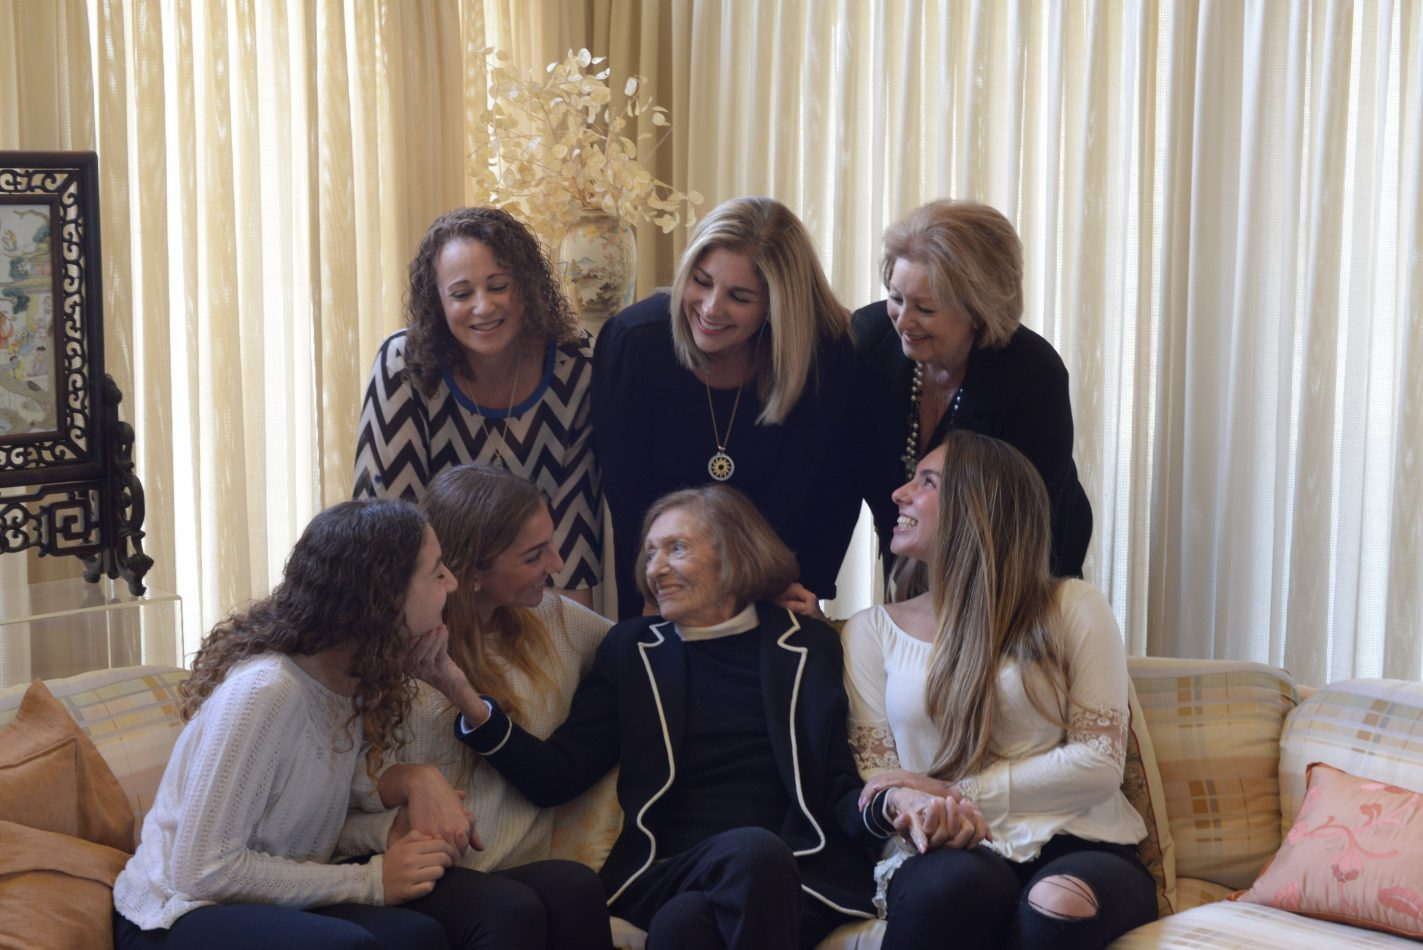 Heidi Hookman Brodsky, JCC board chair and a lawyer and community leader, poses with her family's four generations of women, rear, from left, Wendy Hookman-Vassa, Heidi Hookman Brodsky, Susan Hookman; and front, from left, Olivia Hookman-Vassa, Jillian Brodsky, Raye Swartz-Keller, Claire Brodsky.